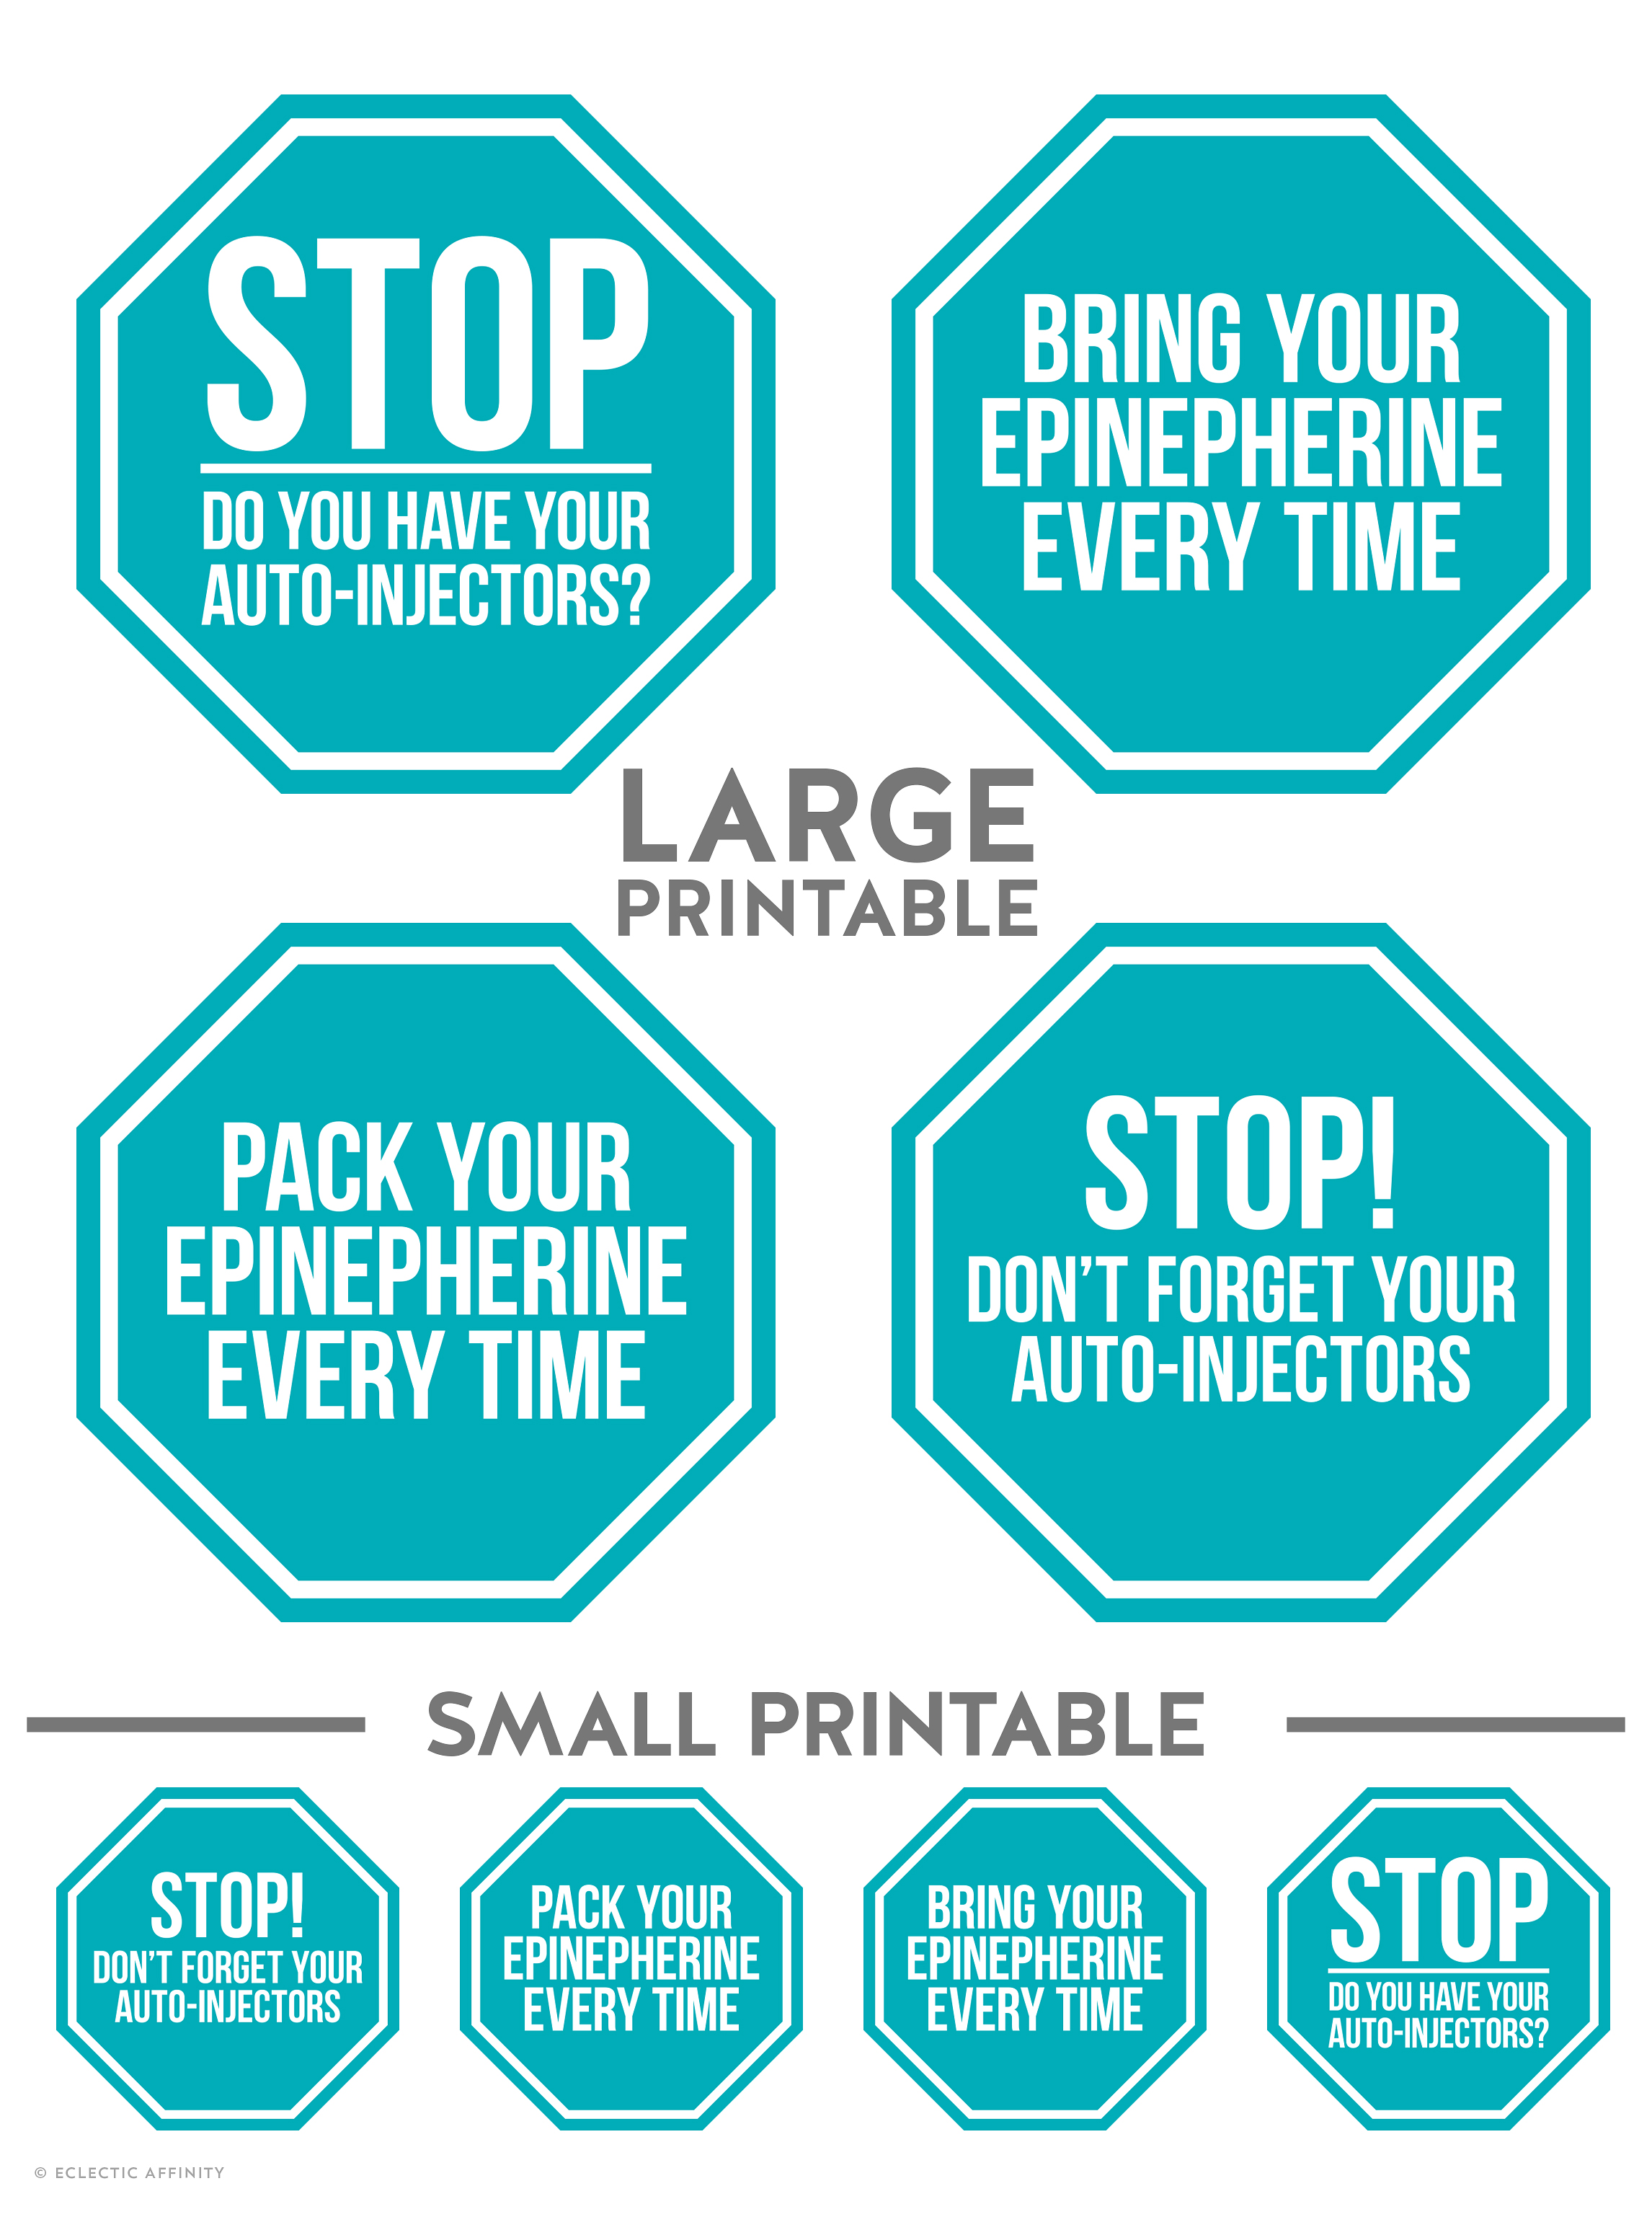 Auto-Injector Reminder Printable; 4 large and 4 small